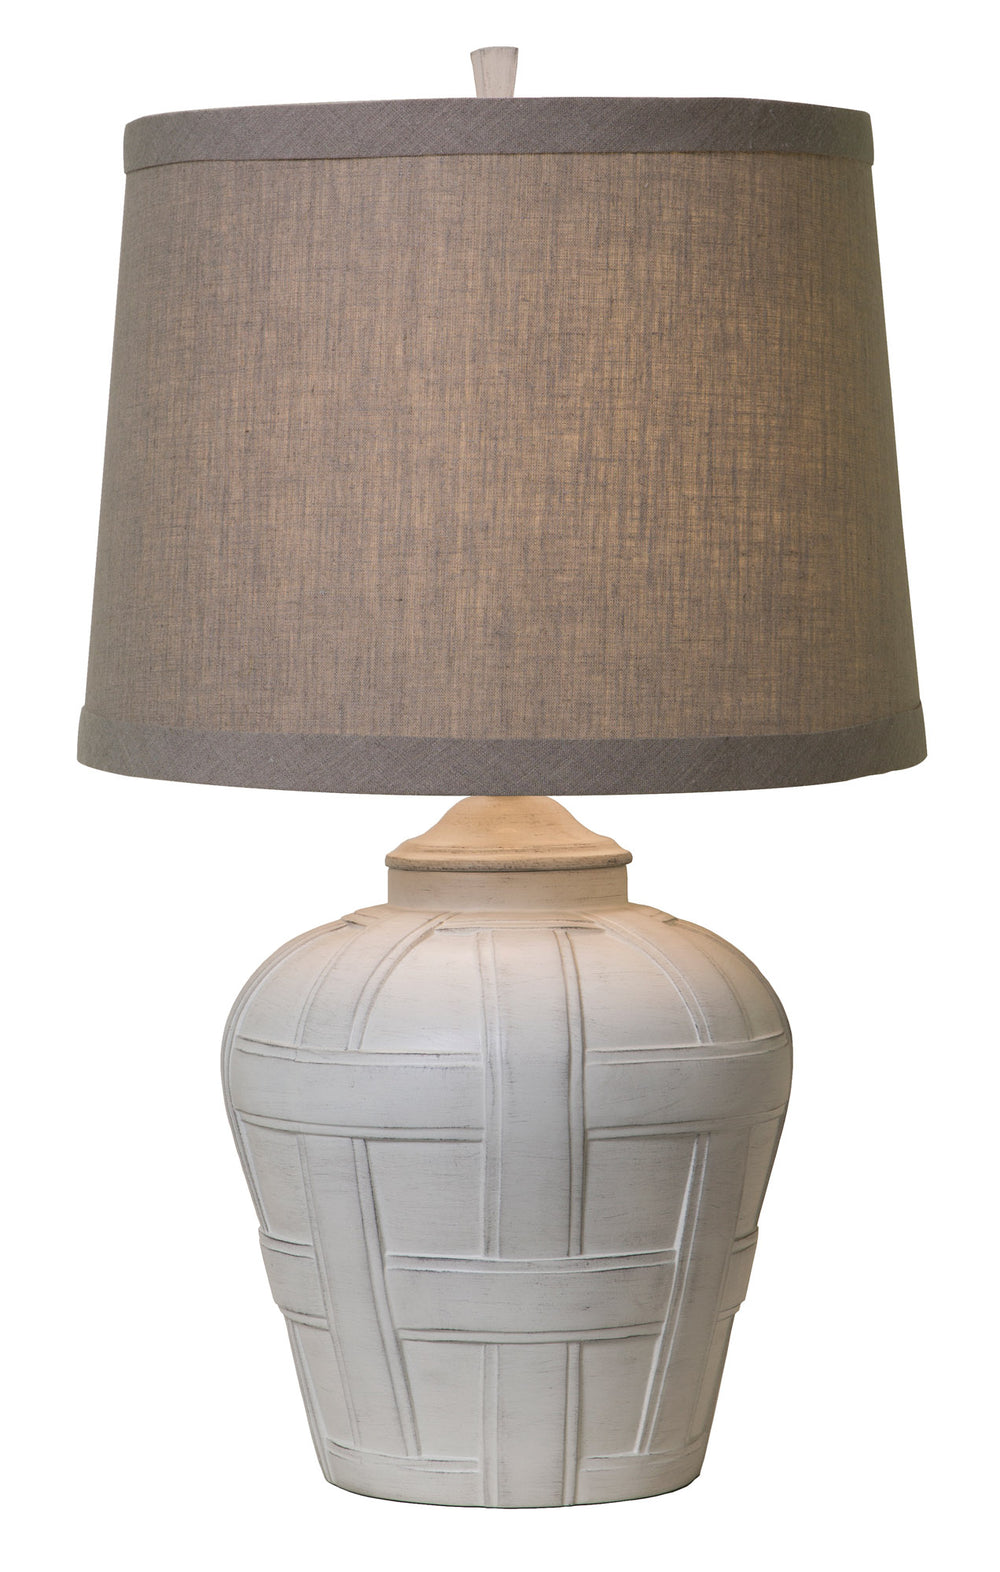 Seagrove Table Lamps by Thumprints